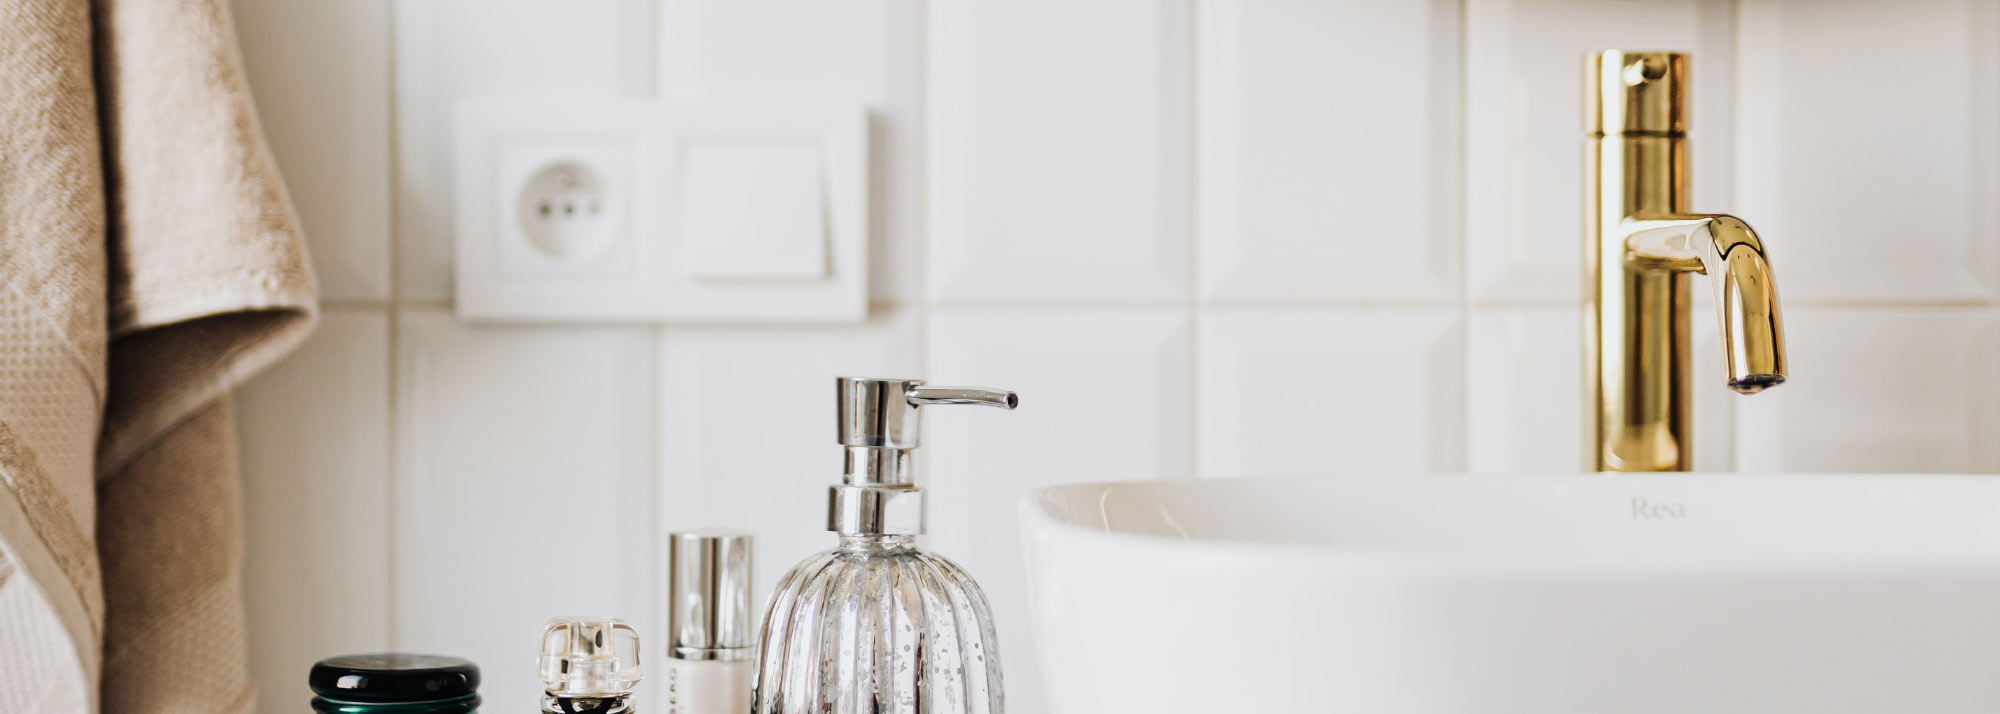 Building Your Home Skin Care Protocol